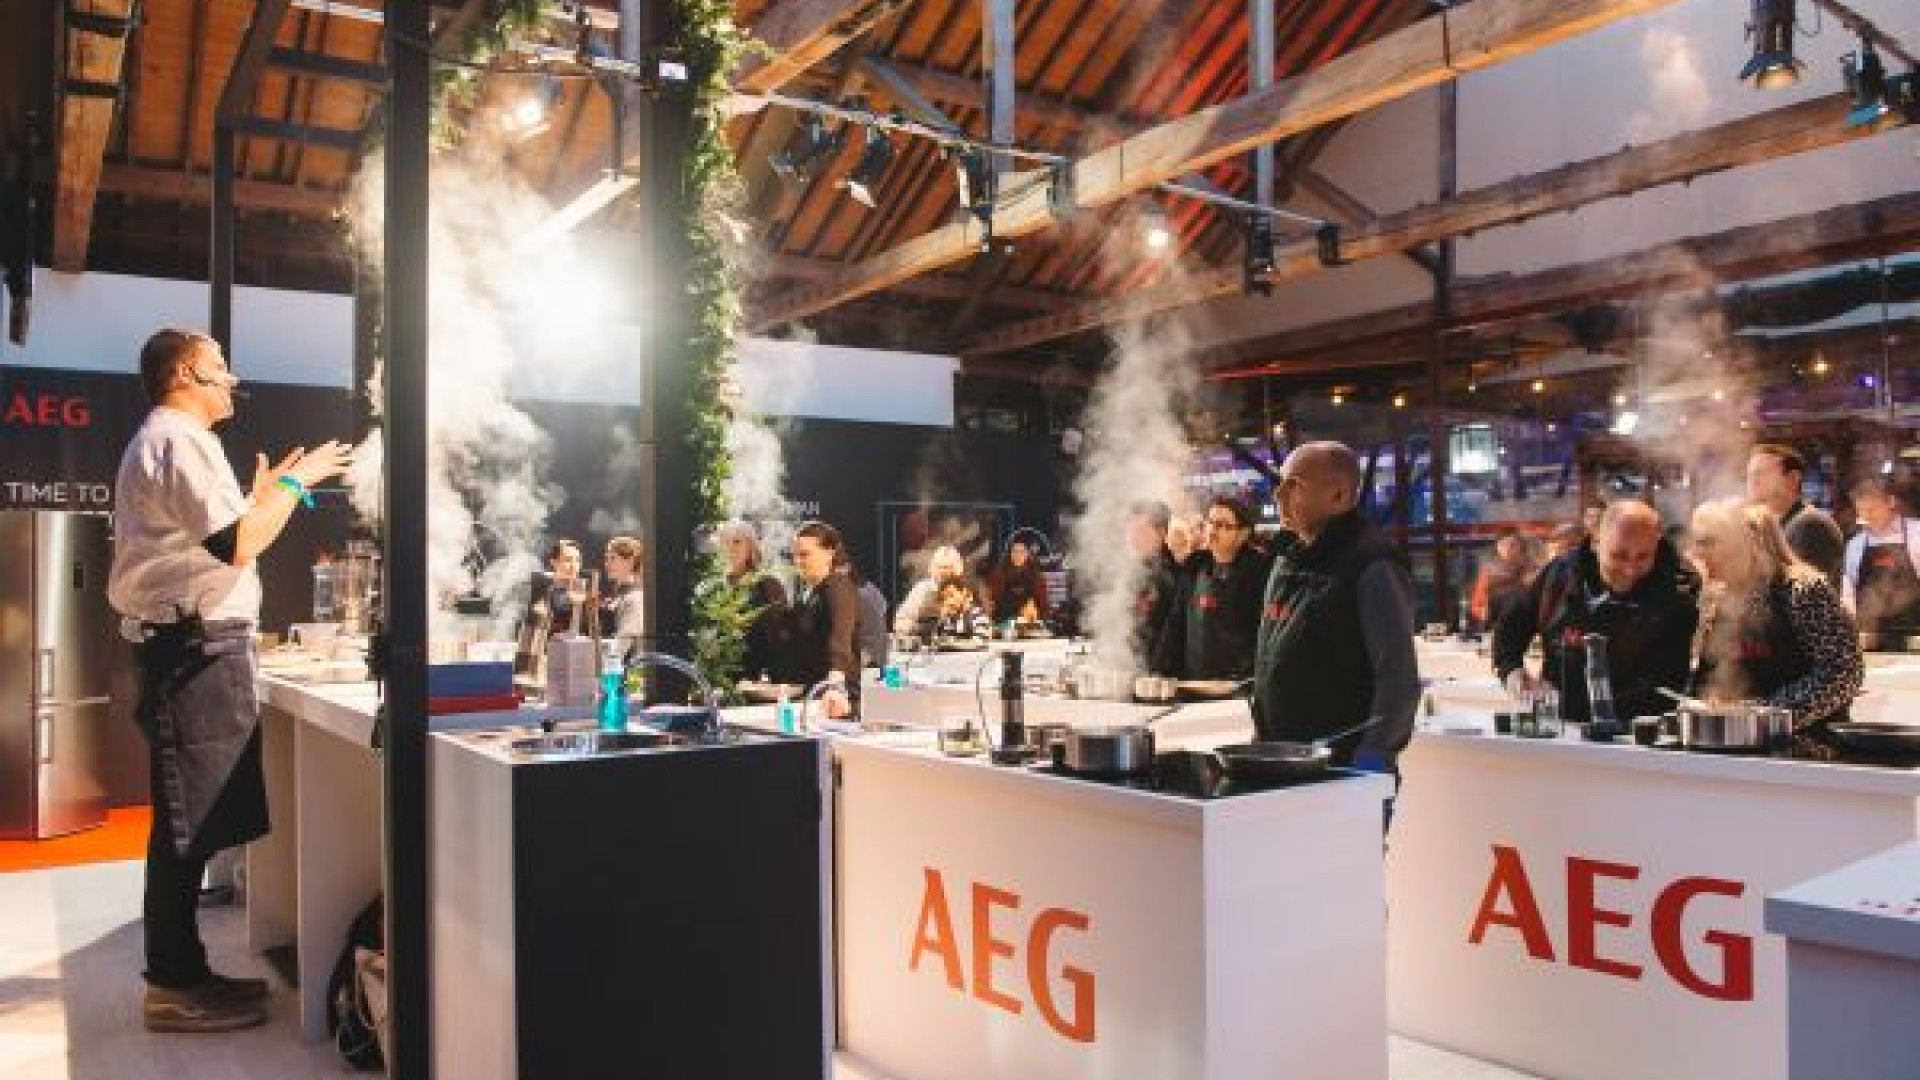 Get baking sessions with AEG at Taste of London's festive edition